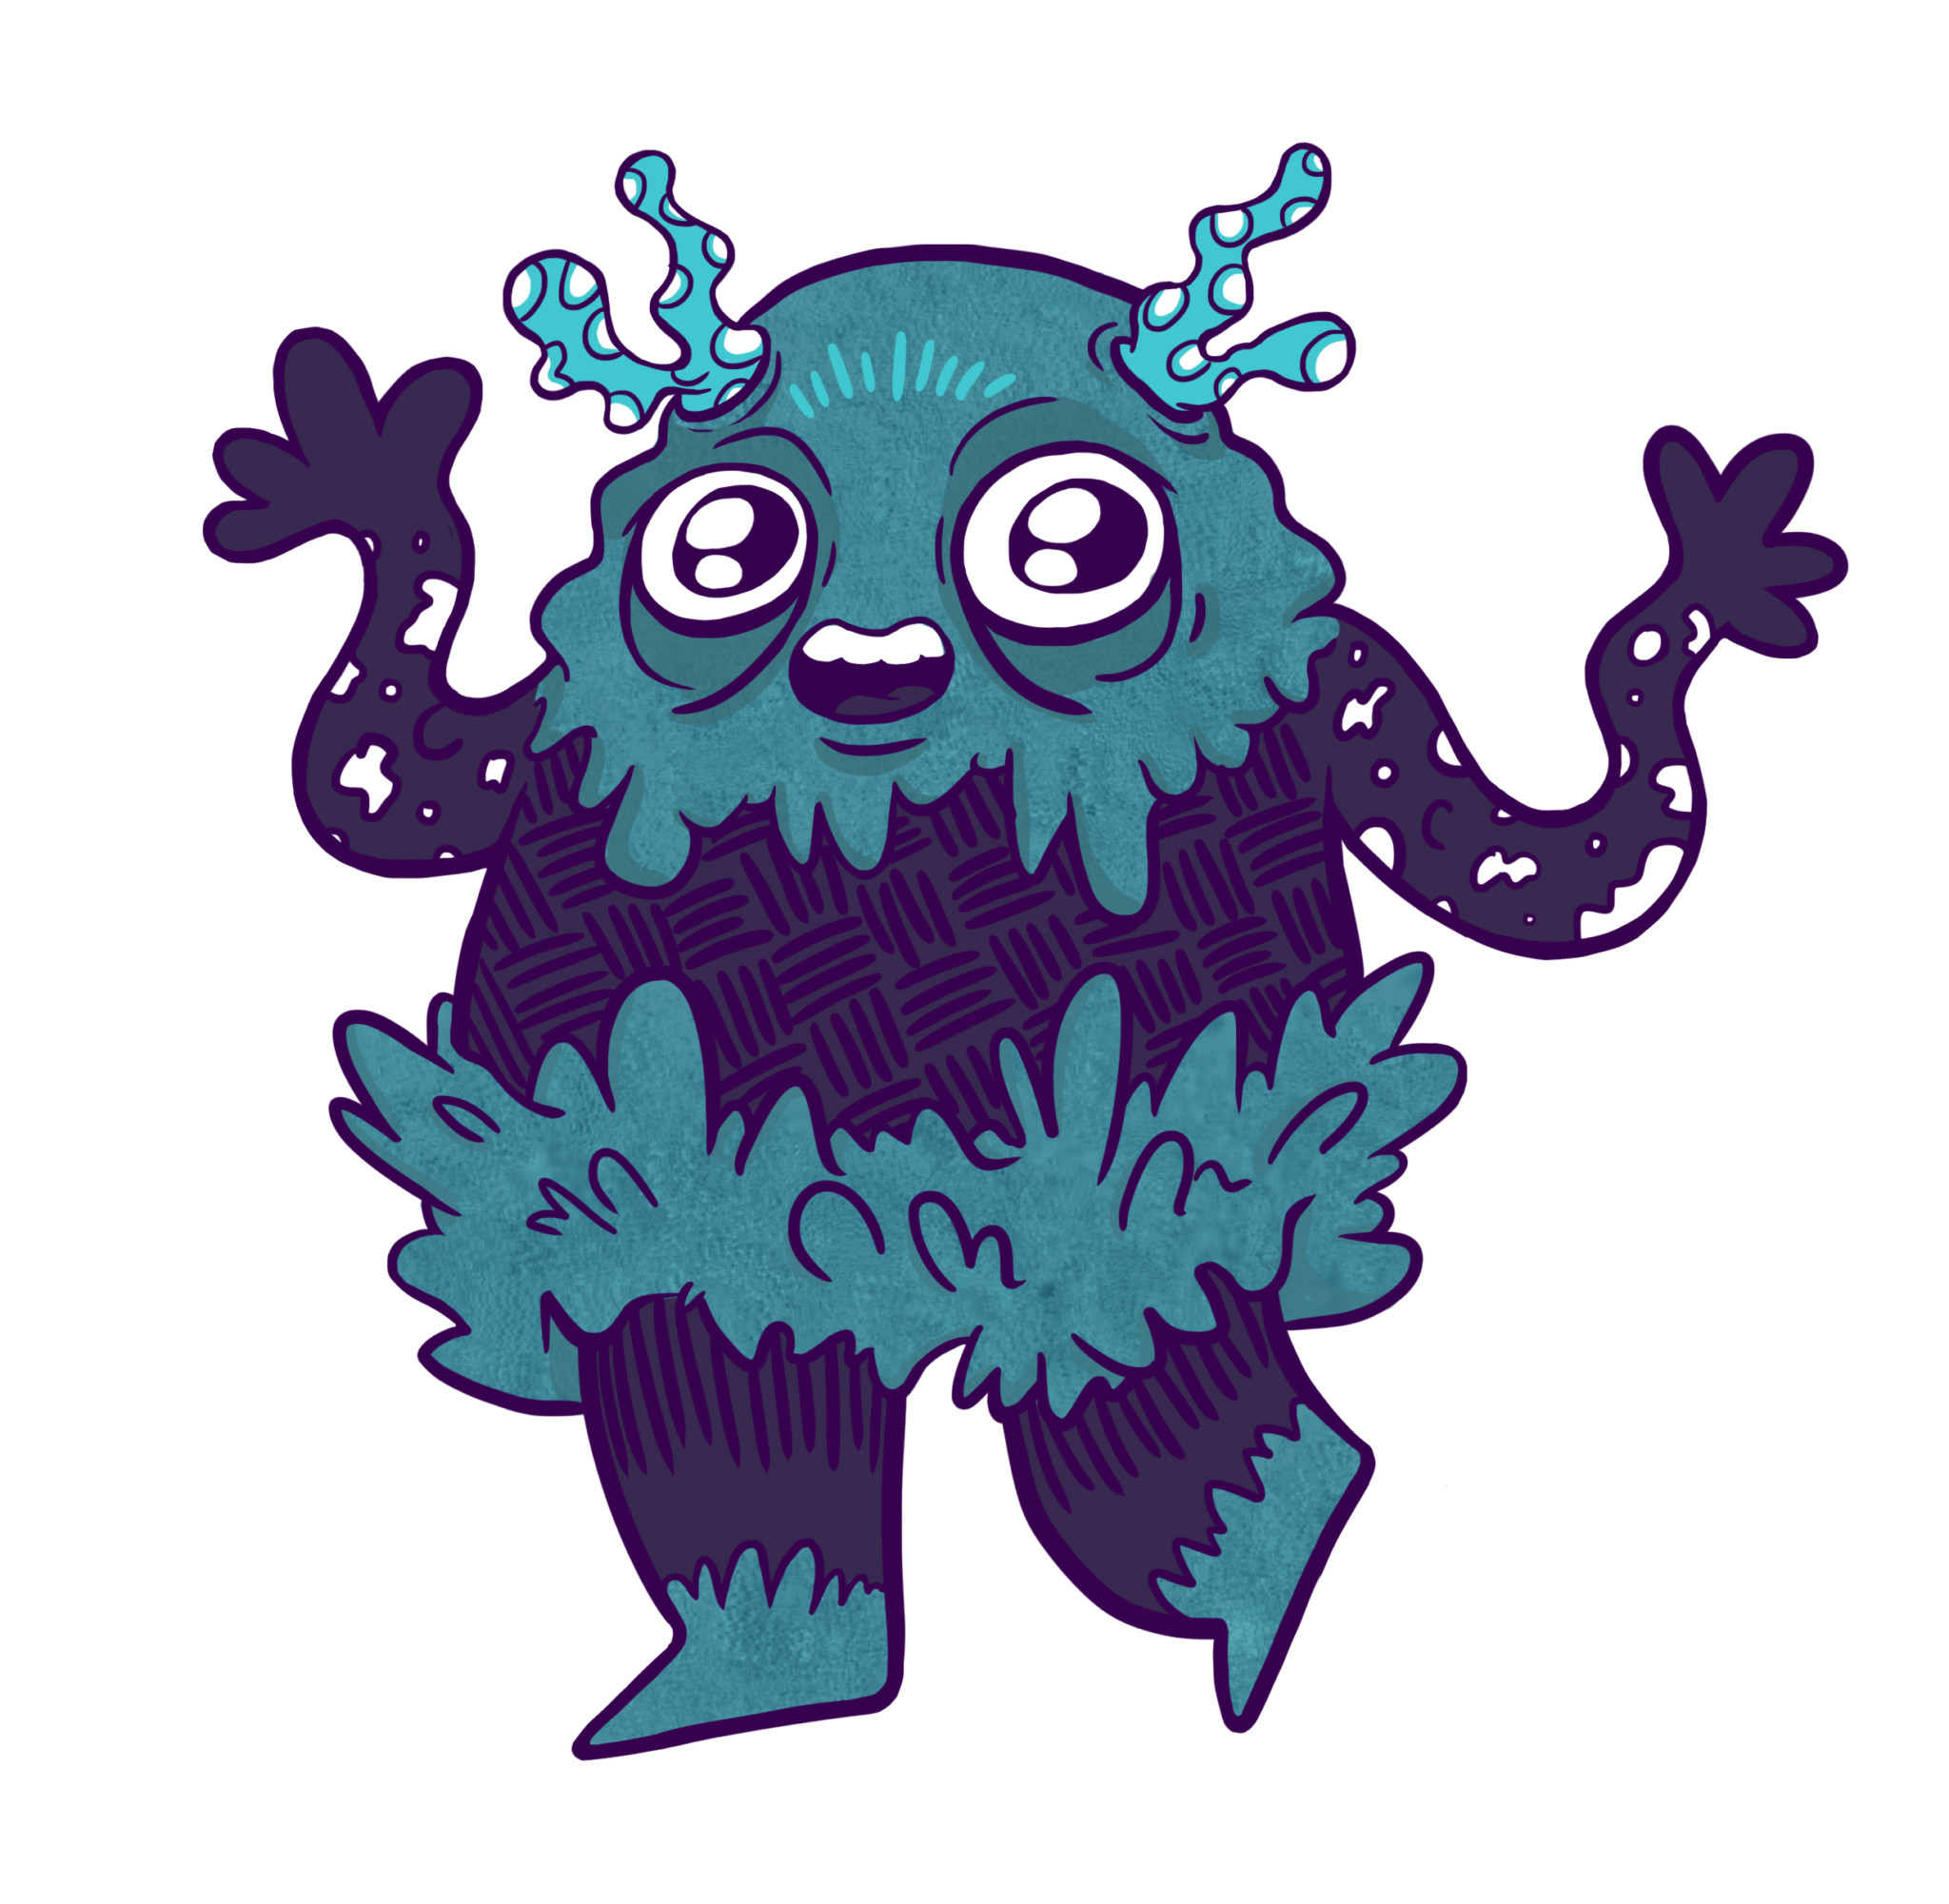 2D Cartoon Slime Monster Character Illustration